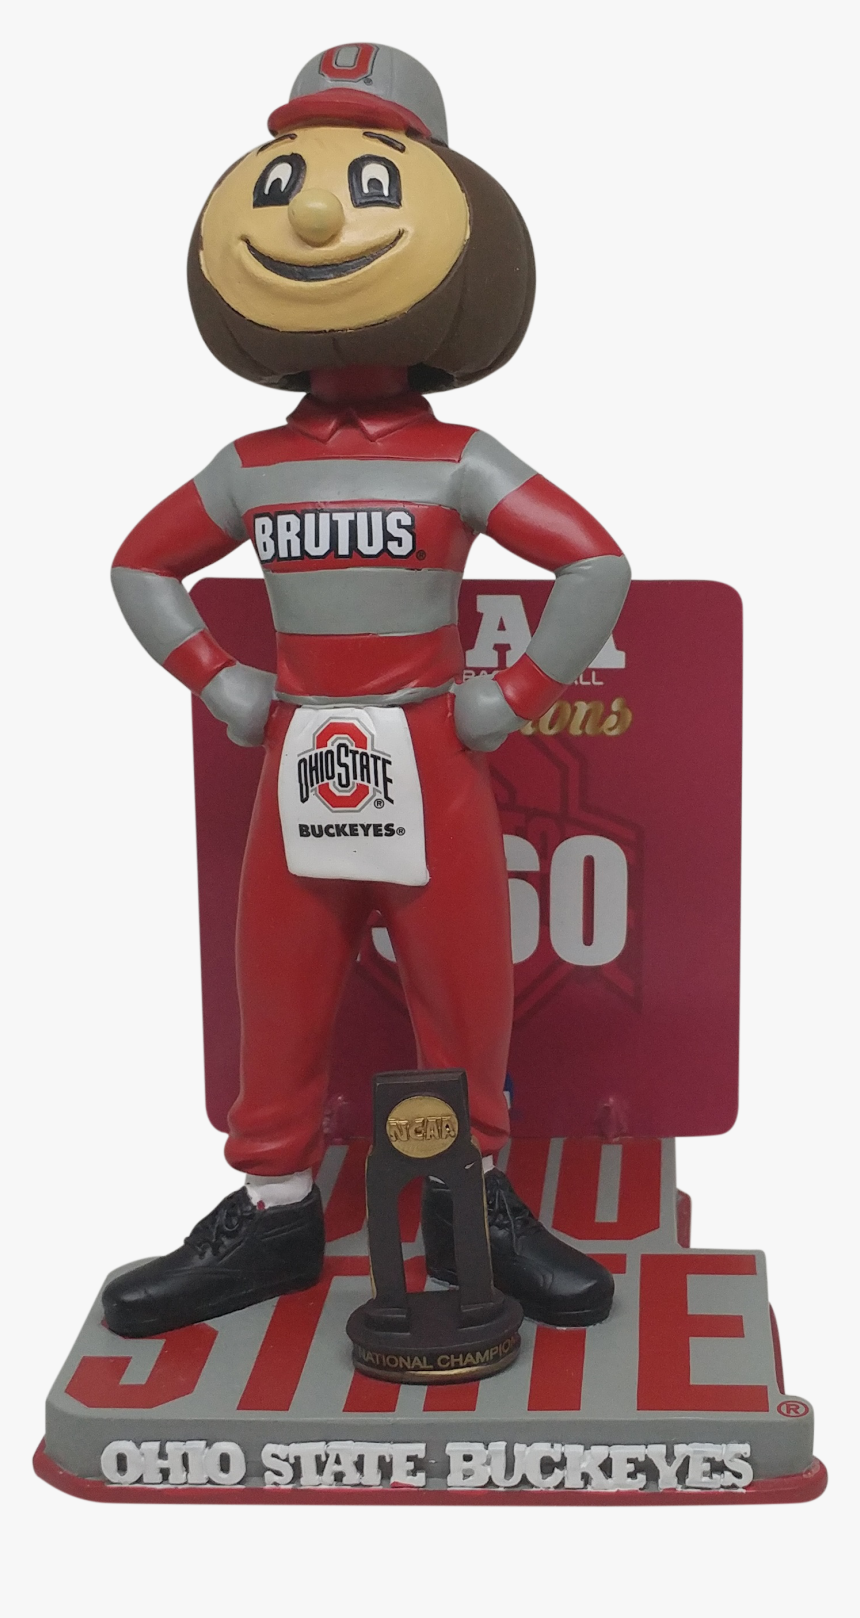 Transparent Brutus Buckeye Png - Figurine, Png Download, Free Download